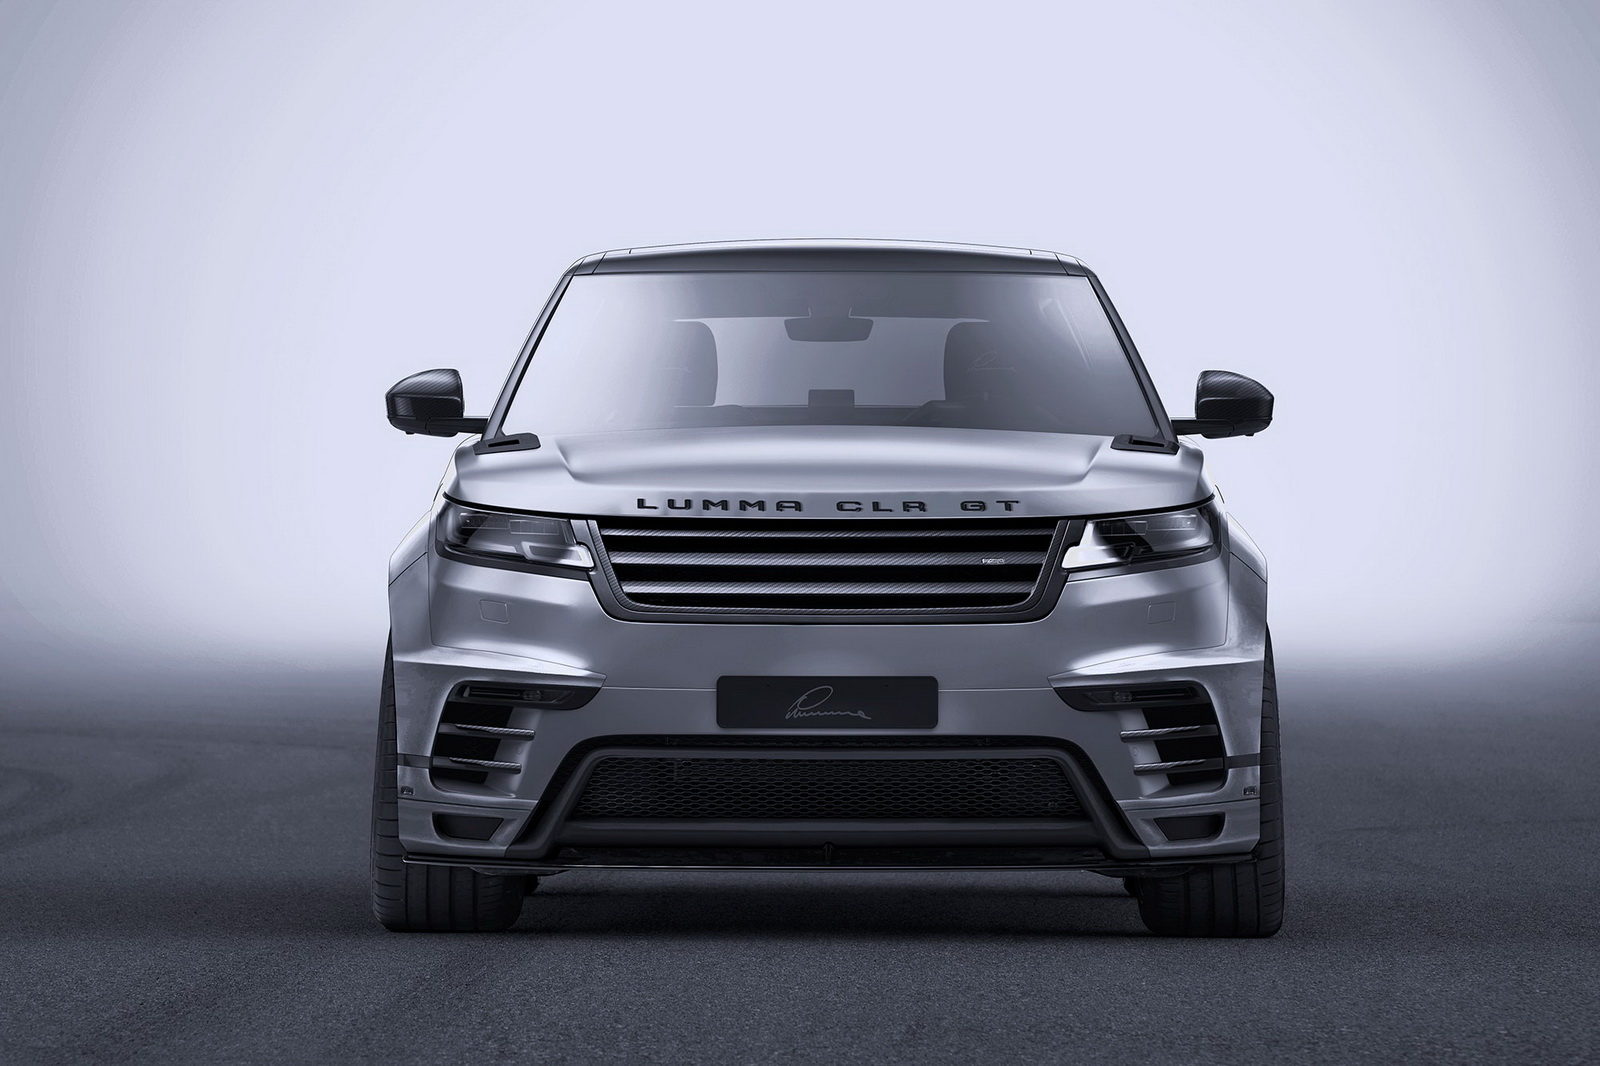 widebody range rover velar by lumma design looks wicked. Black Bedroom Furniture Sets. Home Design Ideas